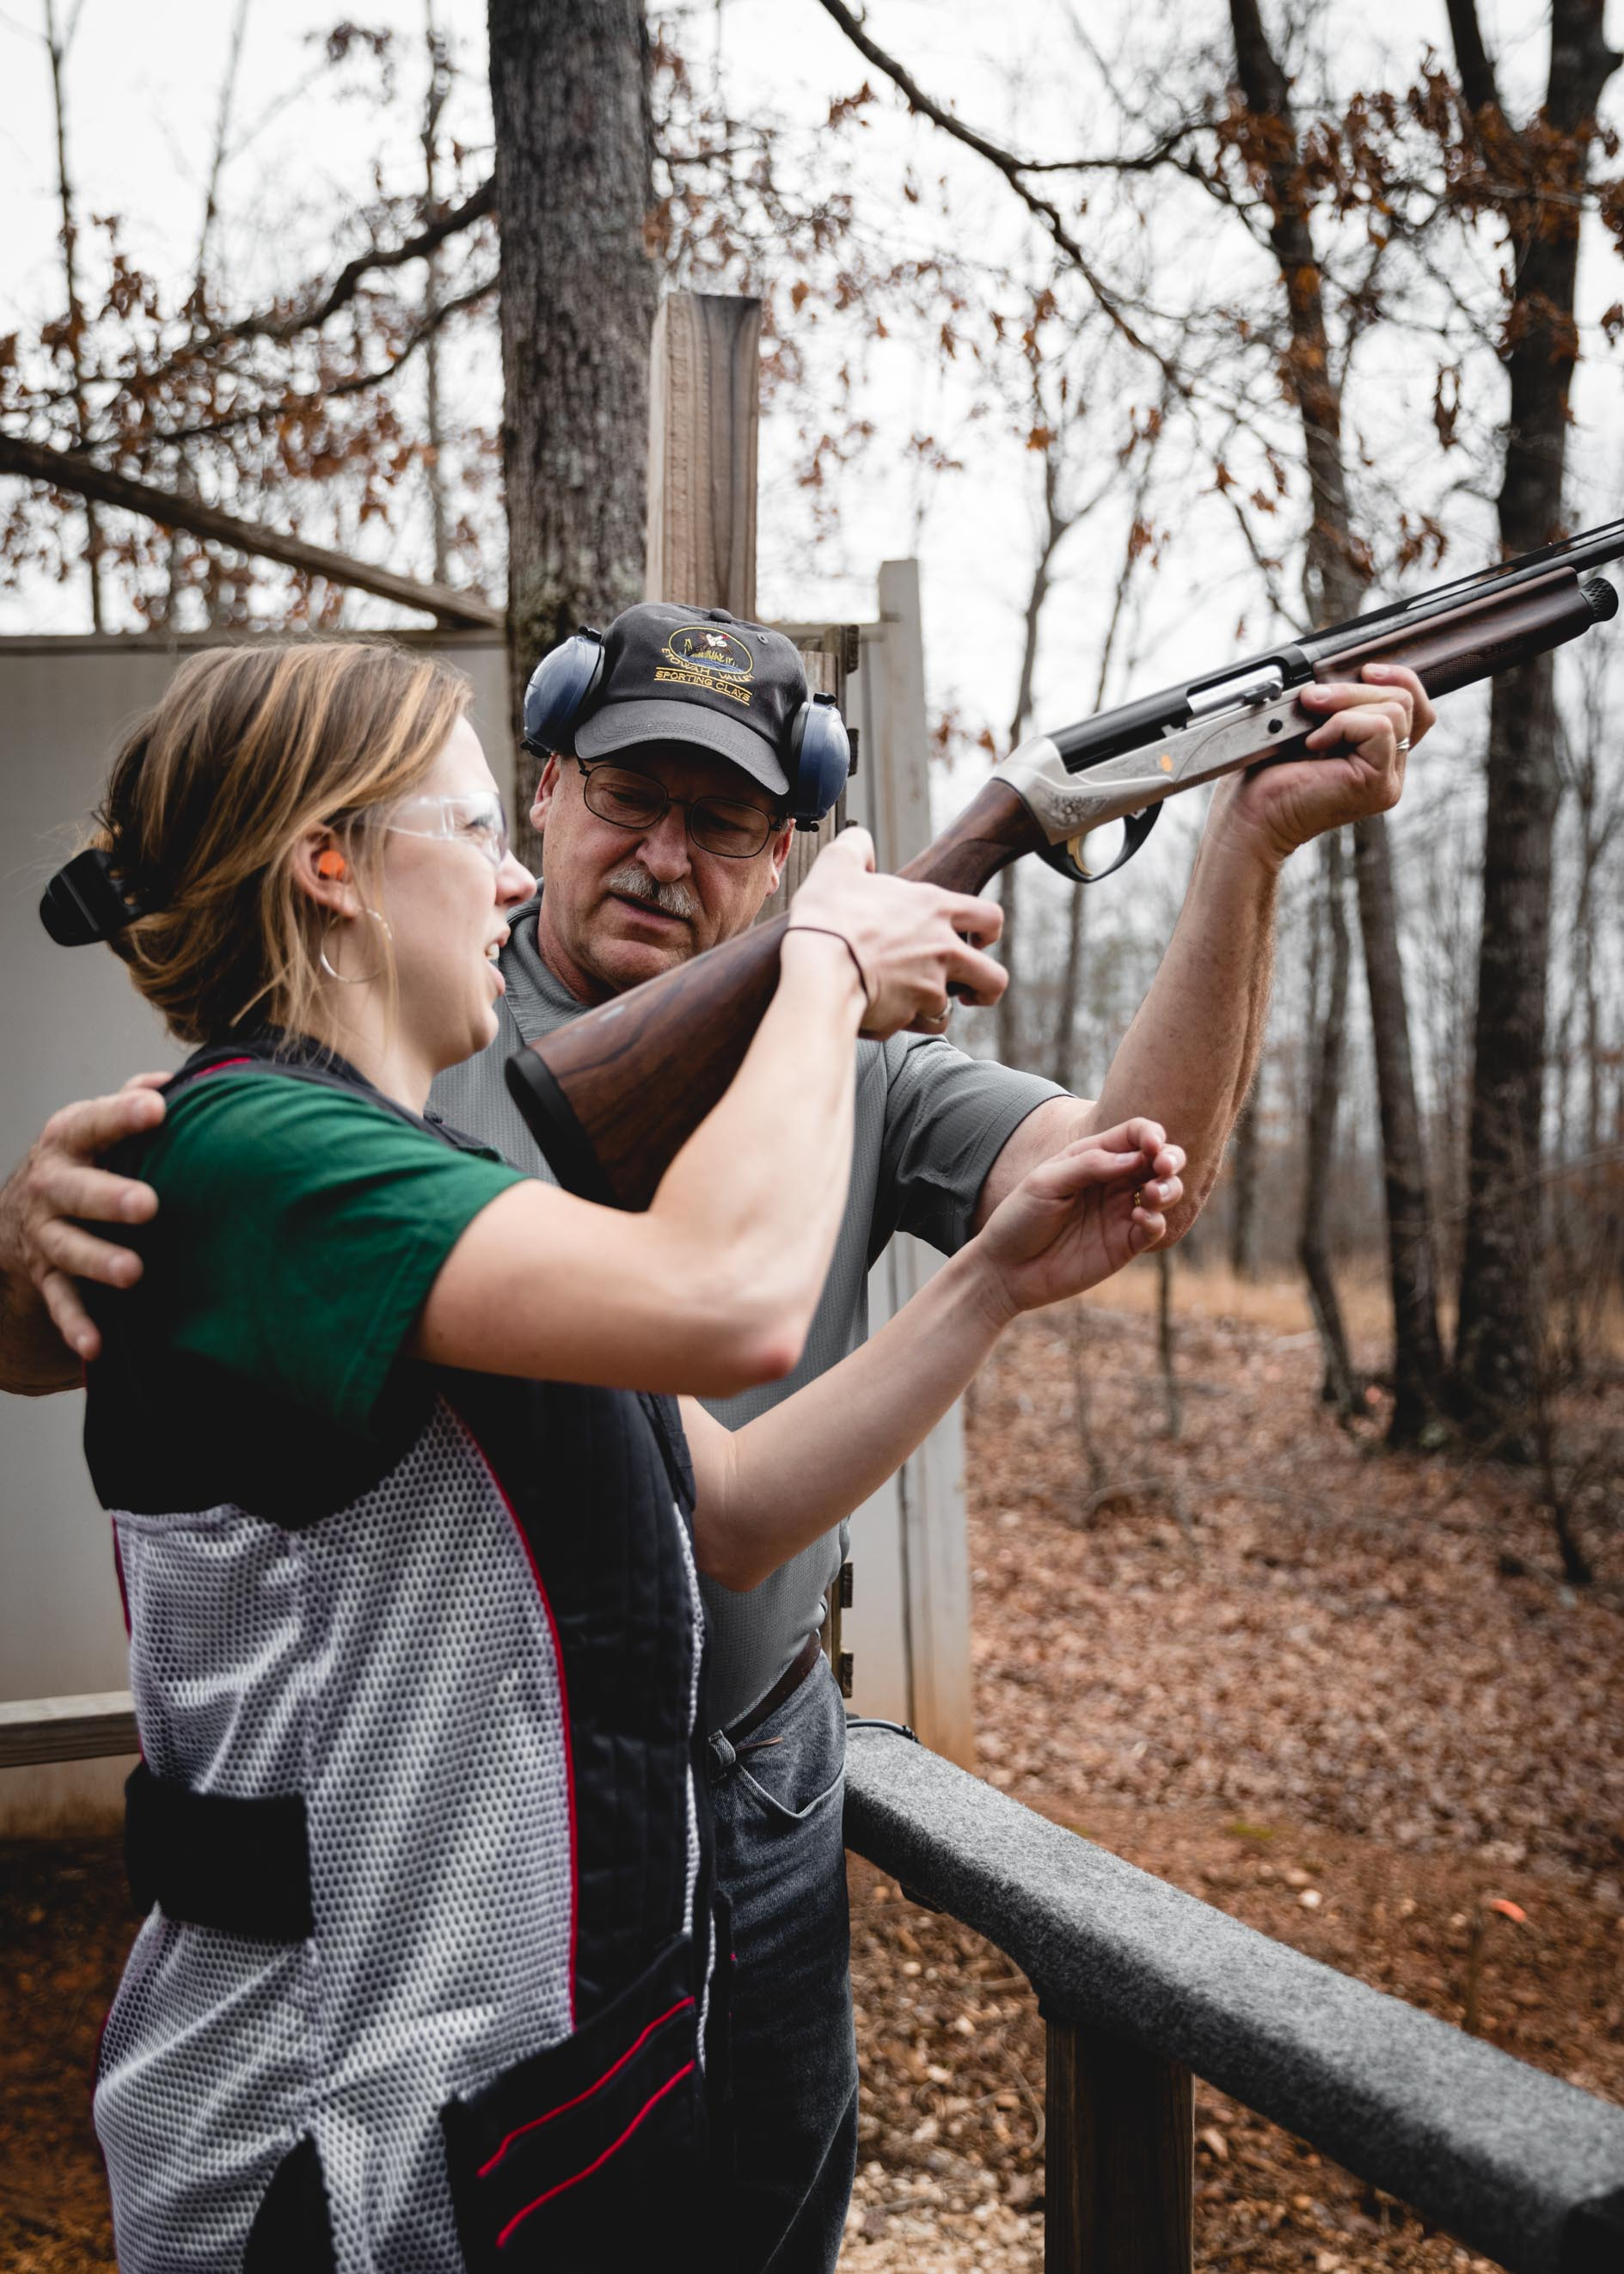 Woman Being Taught Gun Shotgun Safety